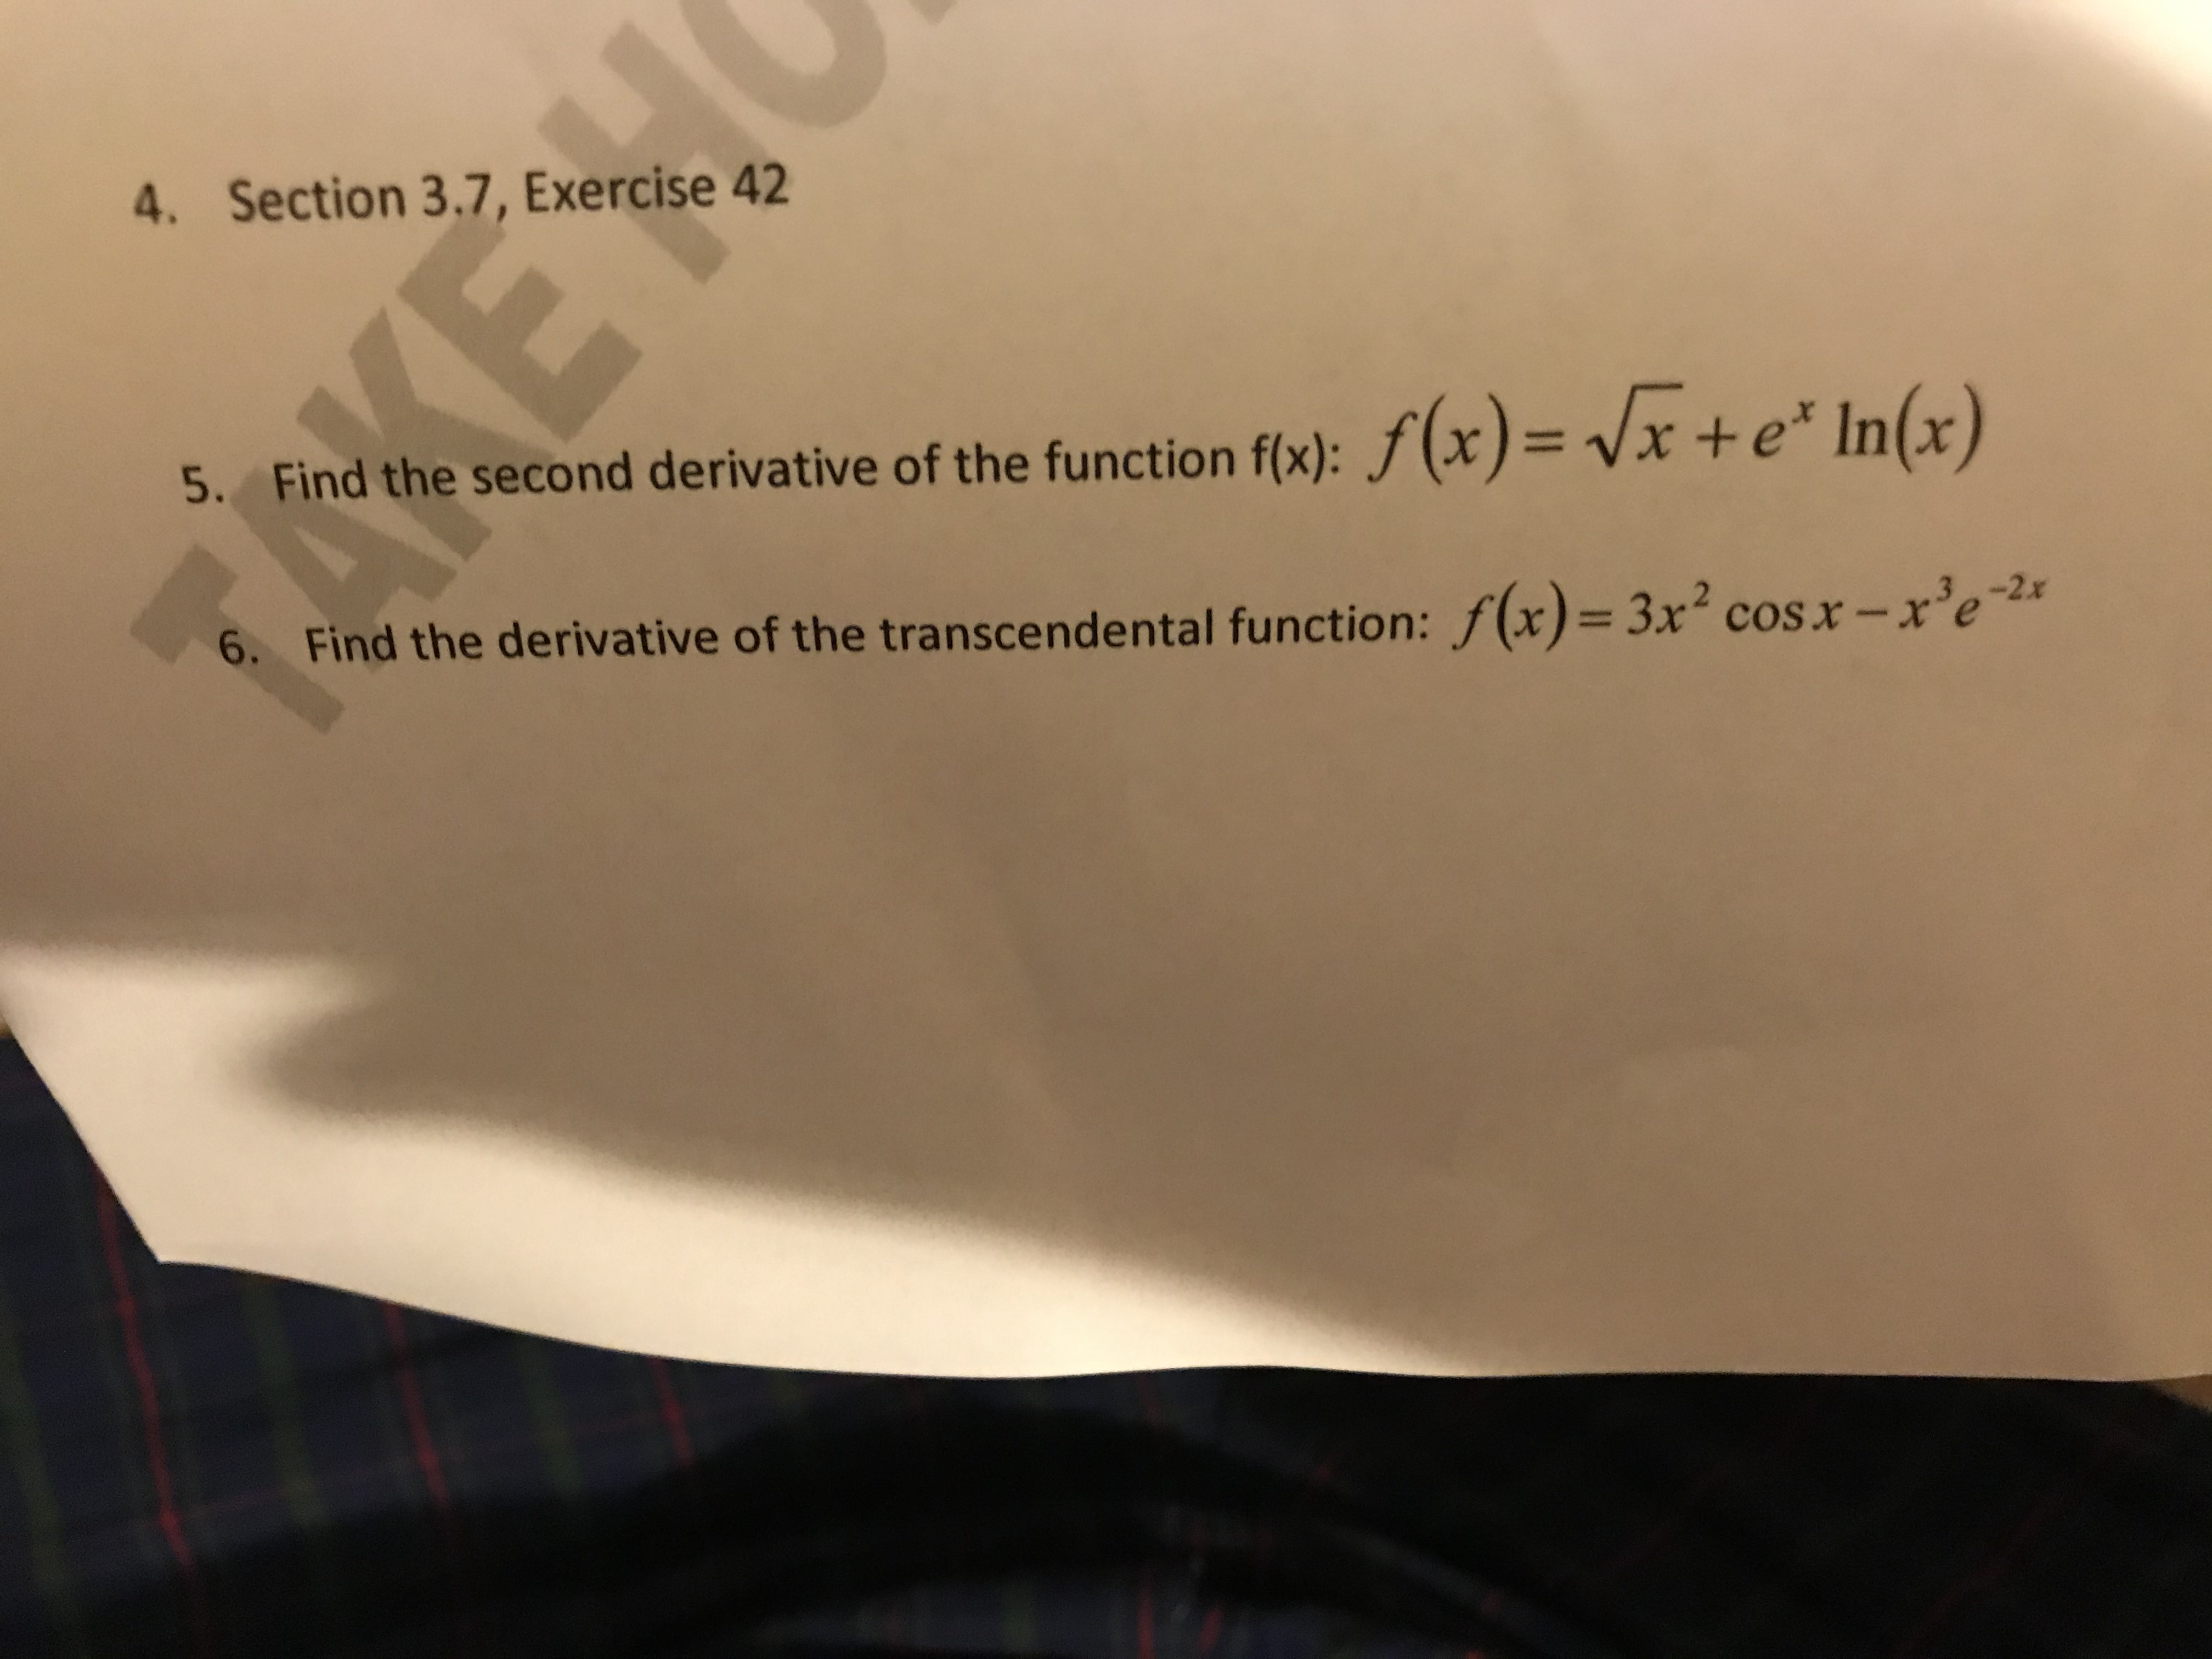 4. Section 3.7, Exercise 42 5. Find the second derivative of the function f(x): f(x) = Vx + e* In(x) 6. Find the derivative of the transcendental function: f(x)= 3x2 cos x - x'e 2